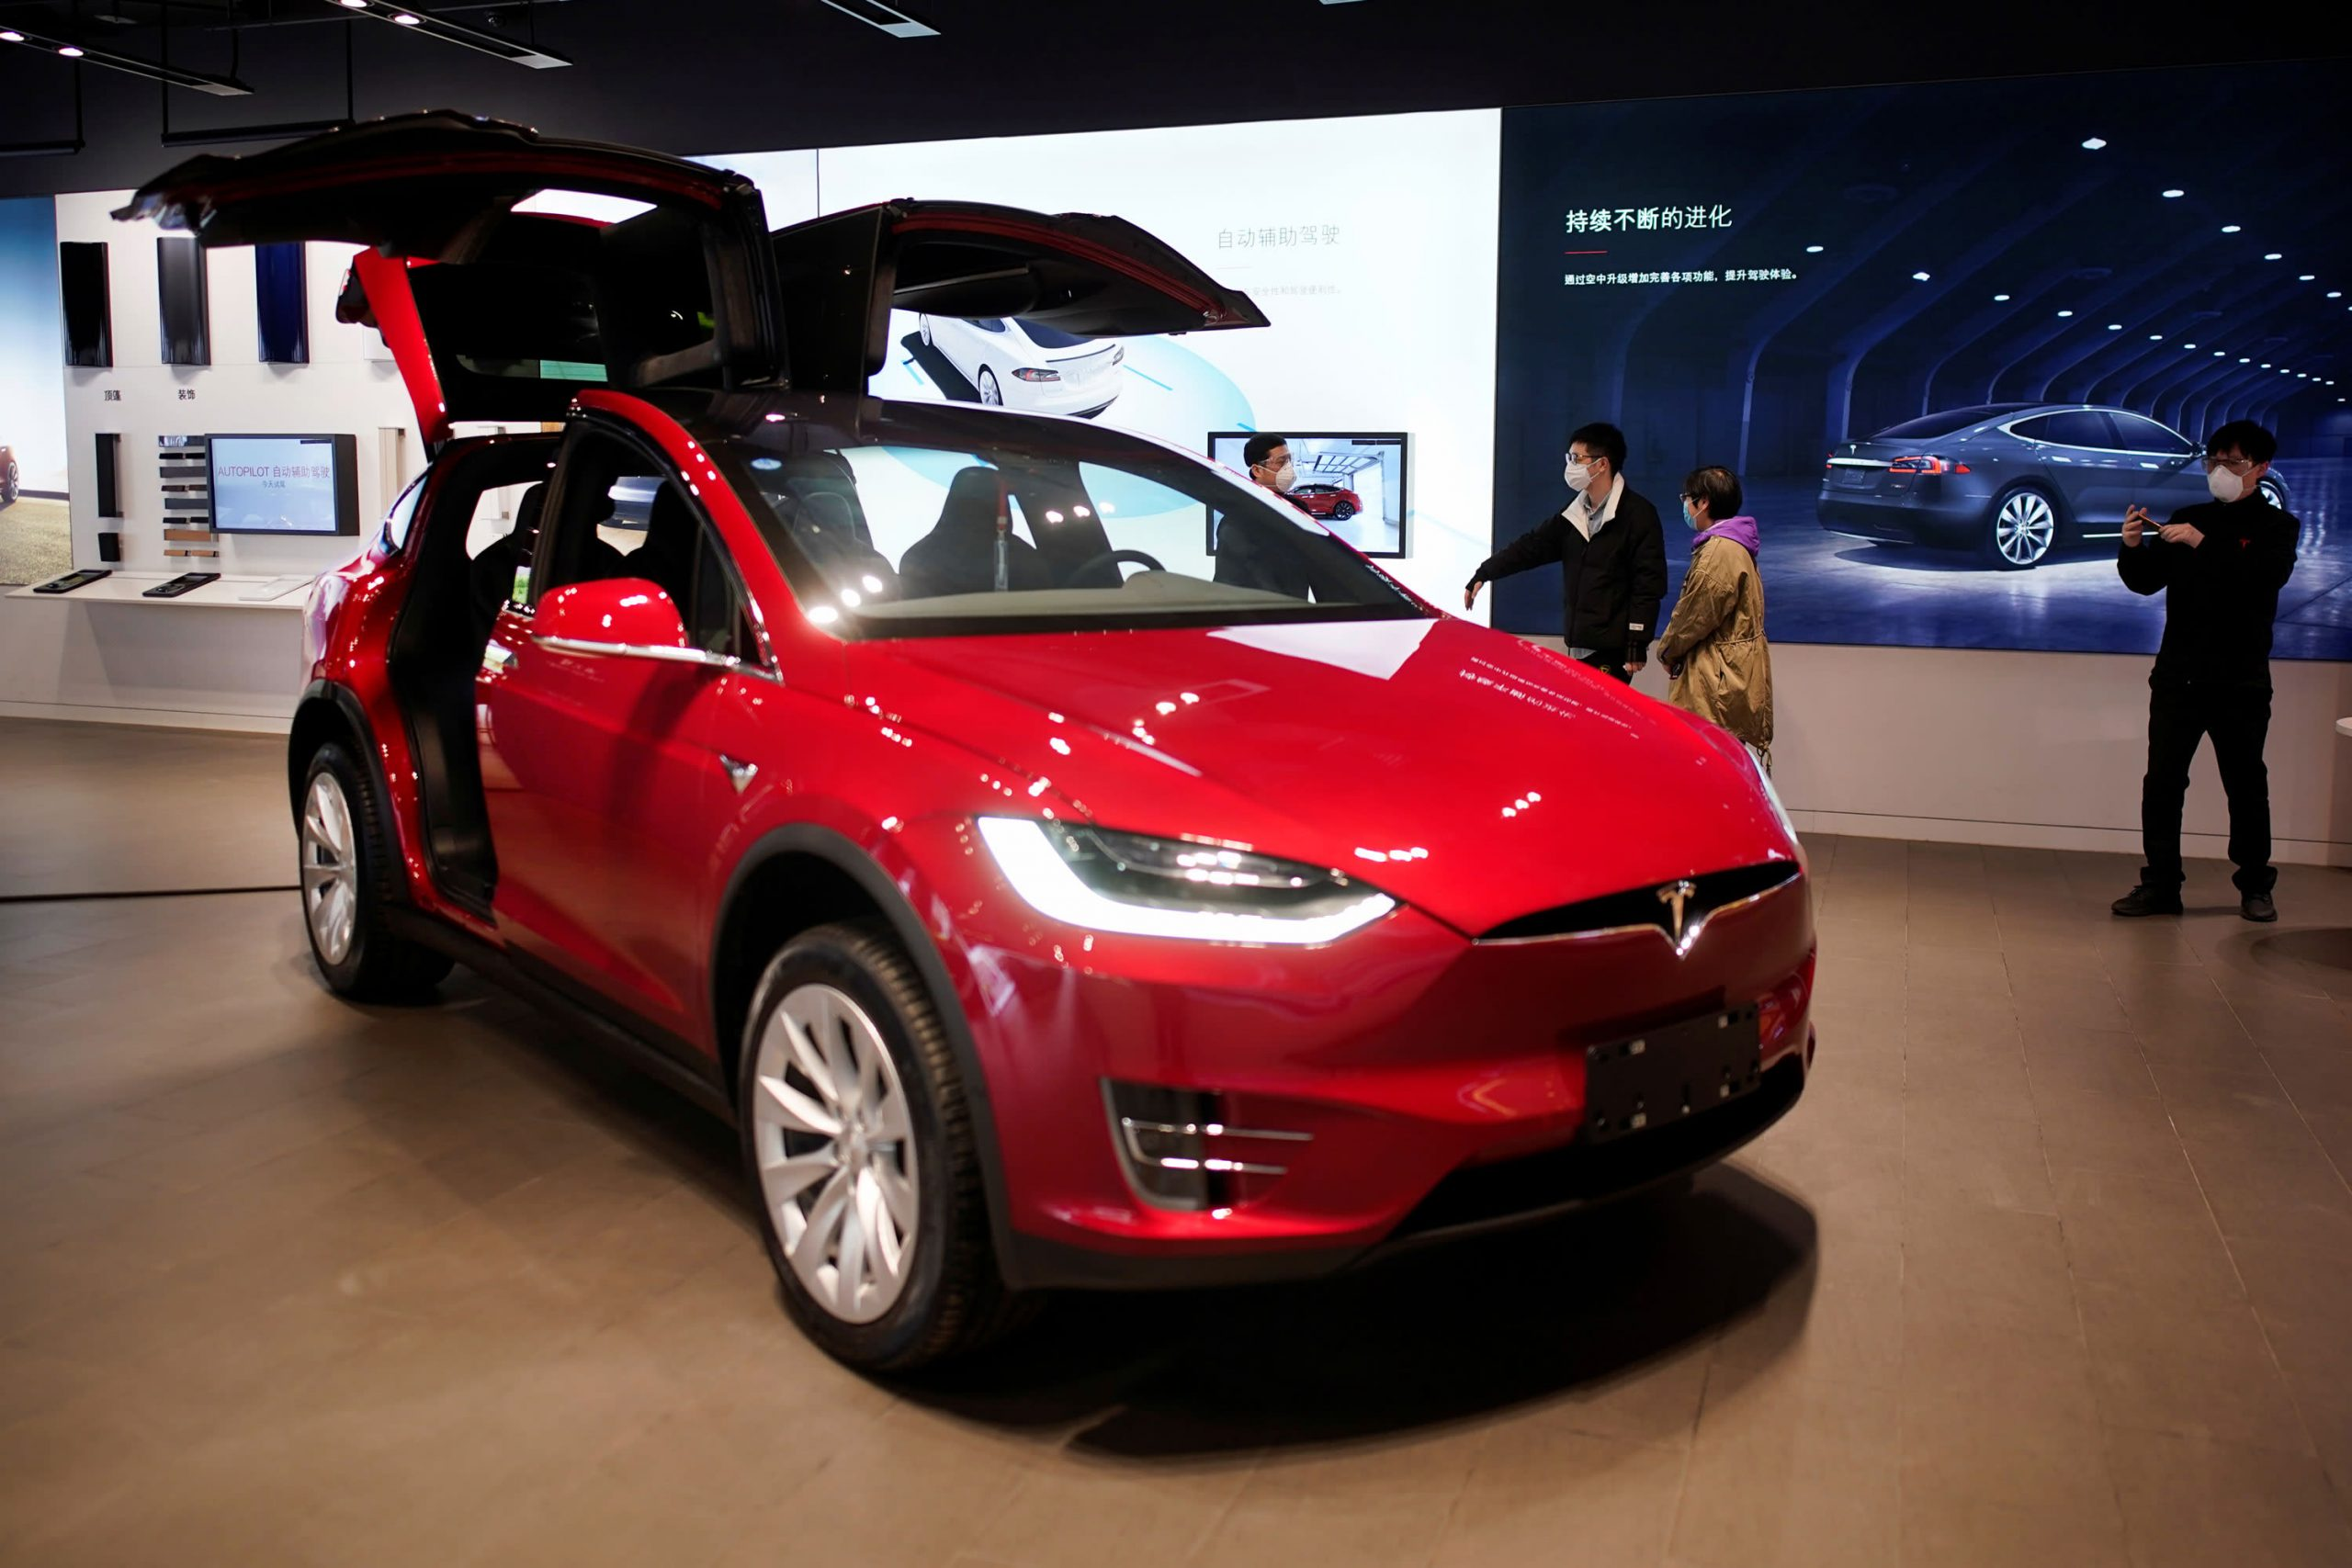 tesla-jumps-6-in-heavy-volume-ahead-of-sp-500-entry-stock-then-falls-a-bit-in-after-hours